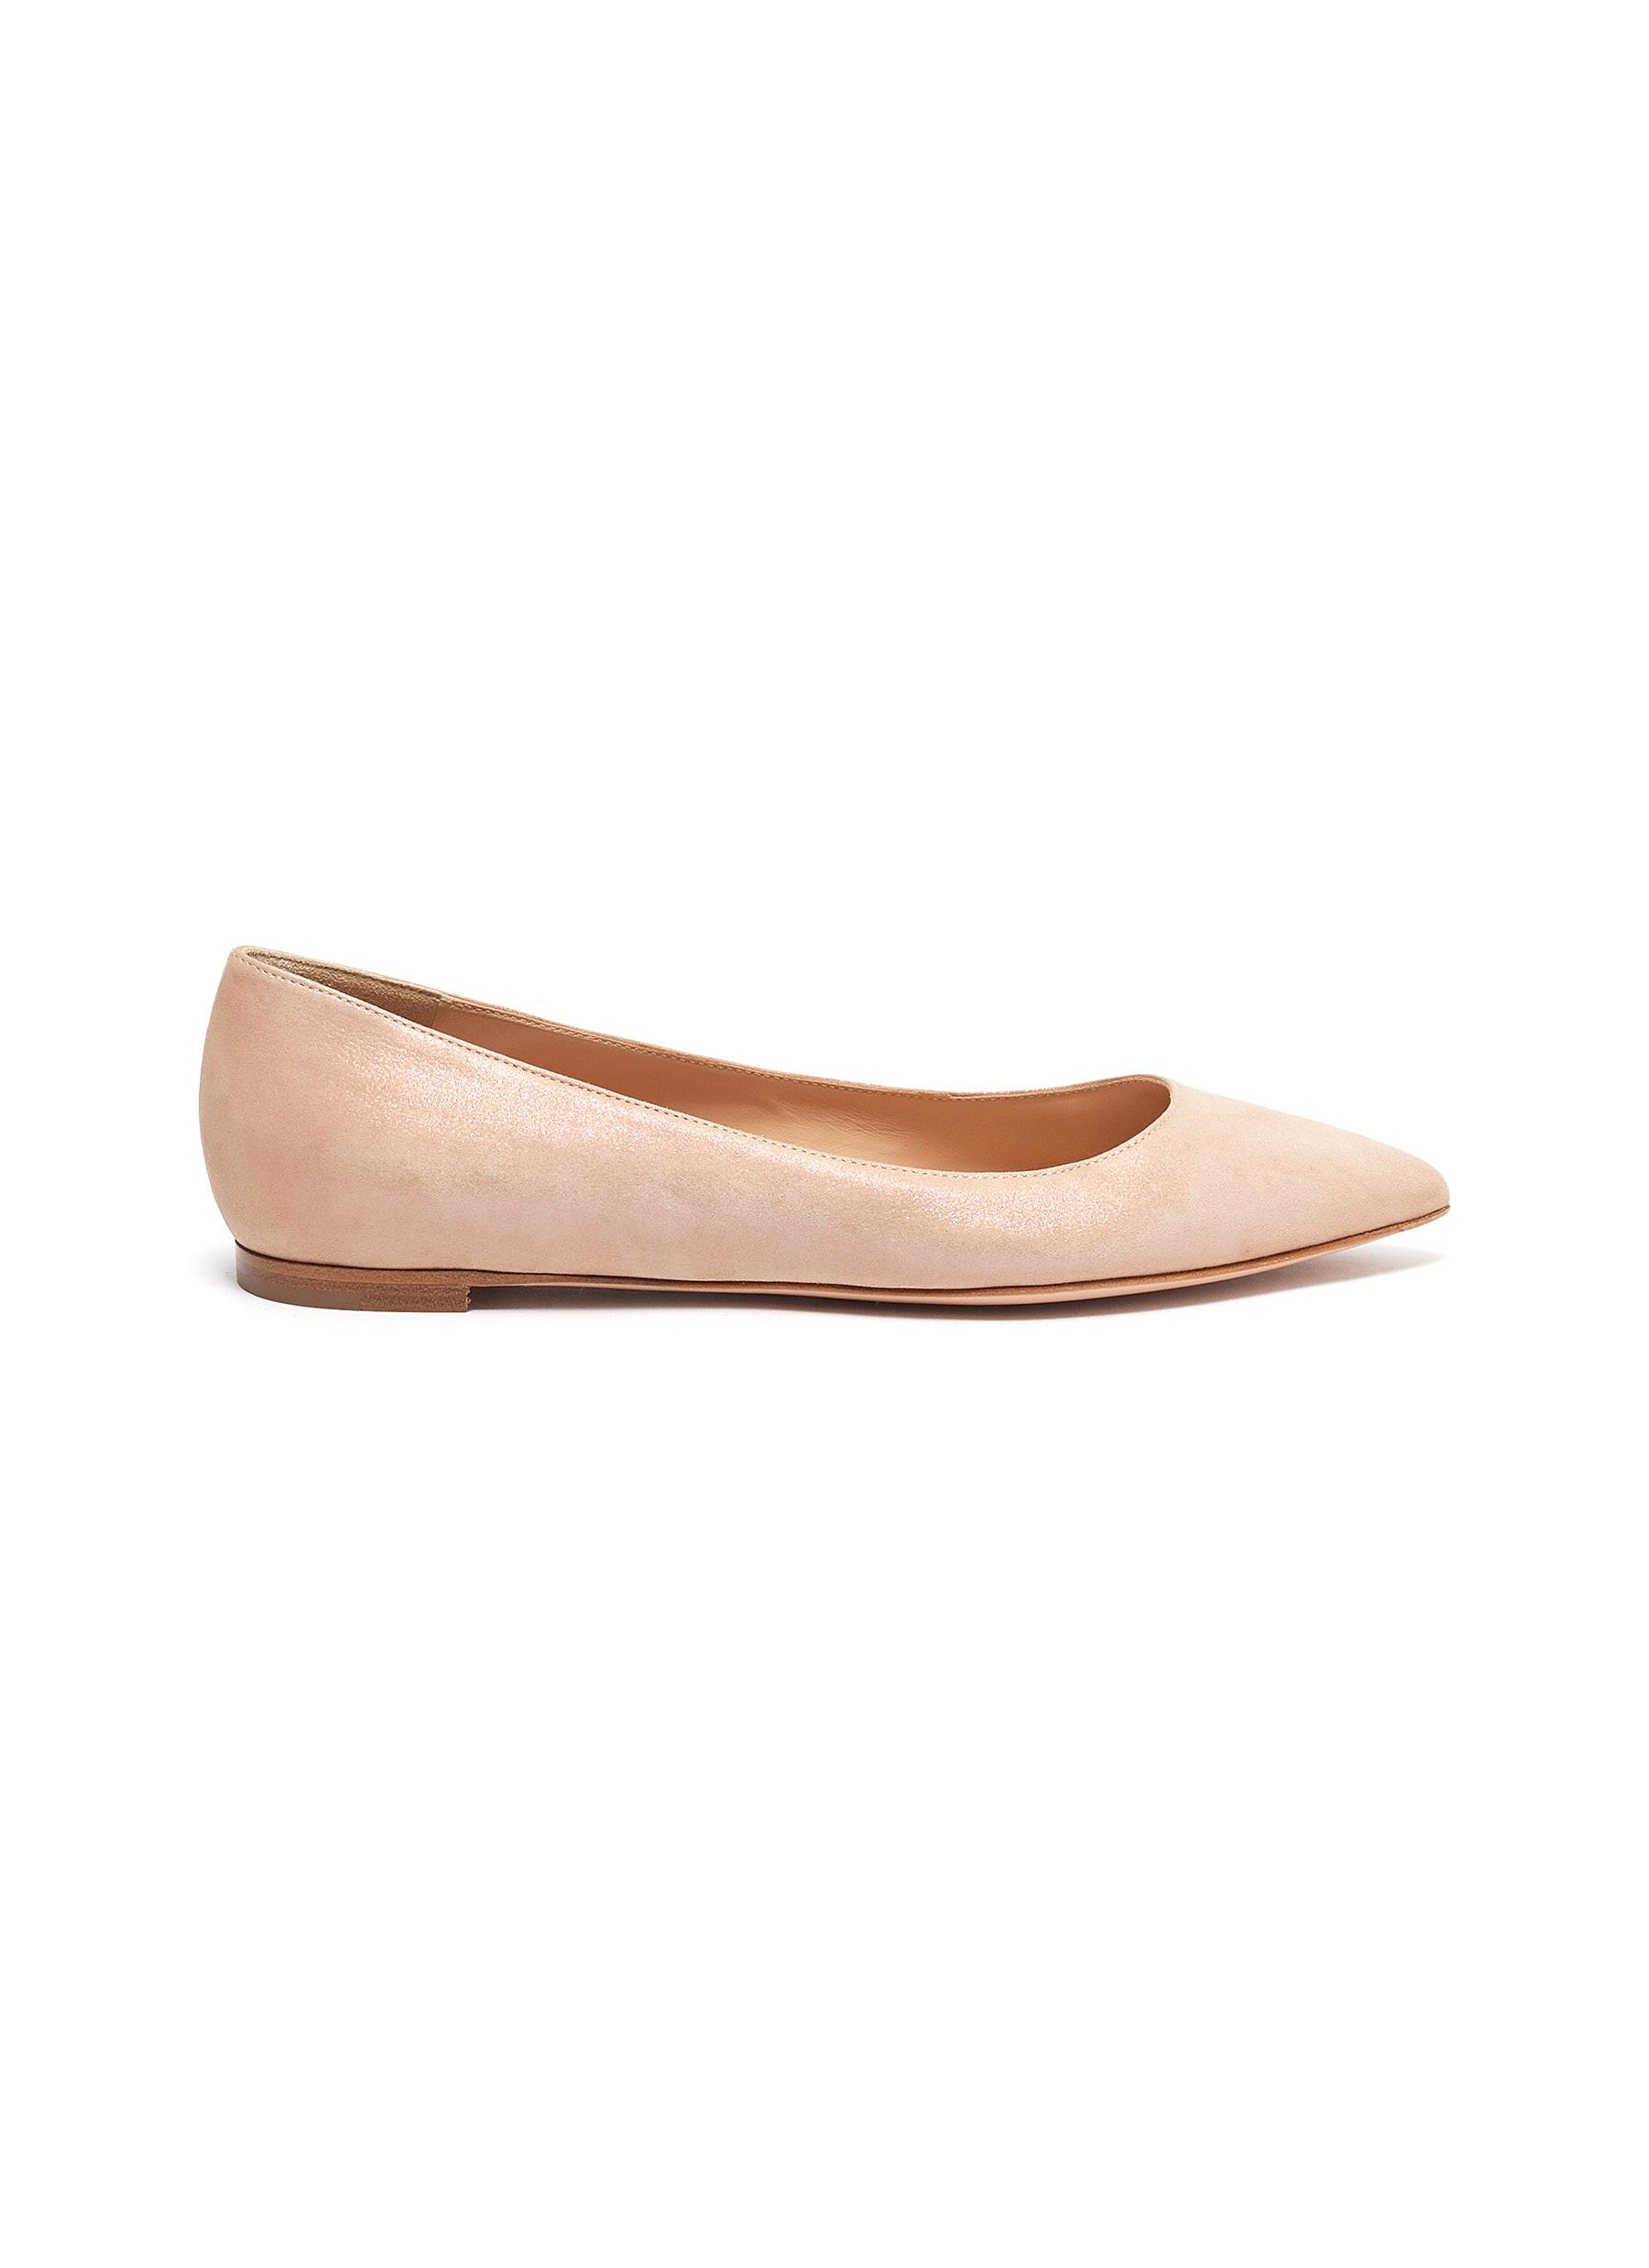 Gianvito Rossi Flats Leather ballet flats